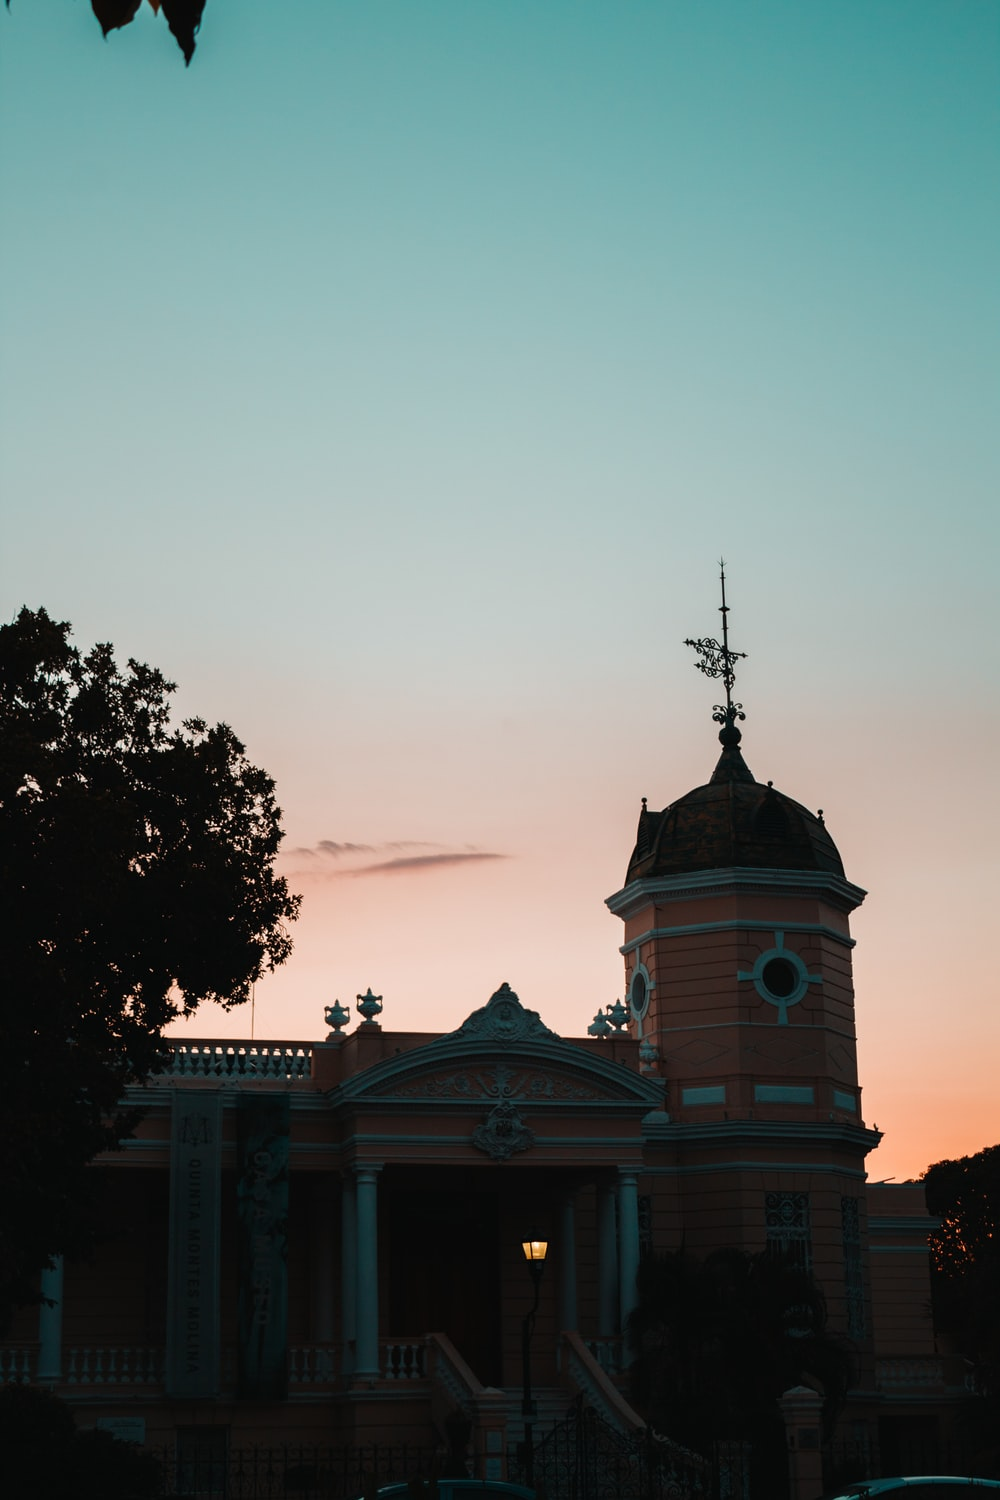 pink and brown domed building